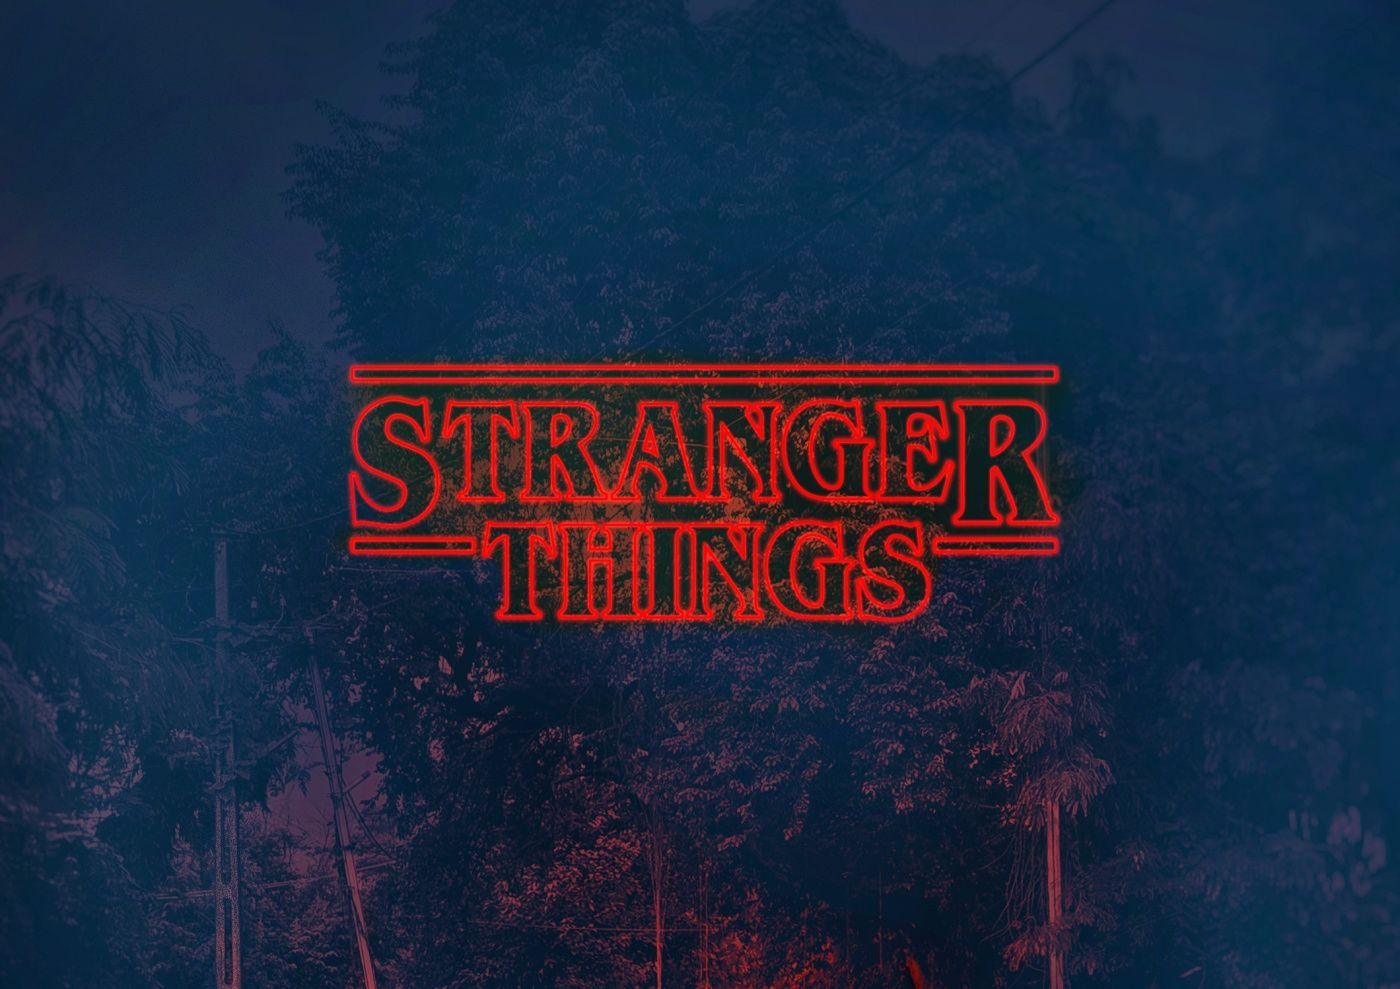 Stranger Things Wallpaper Quotes Daily in 2020